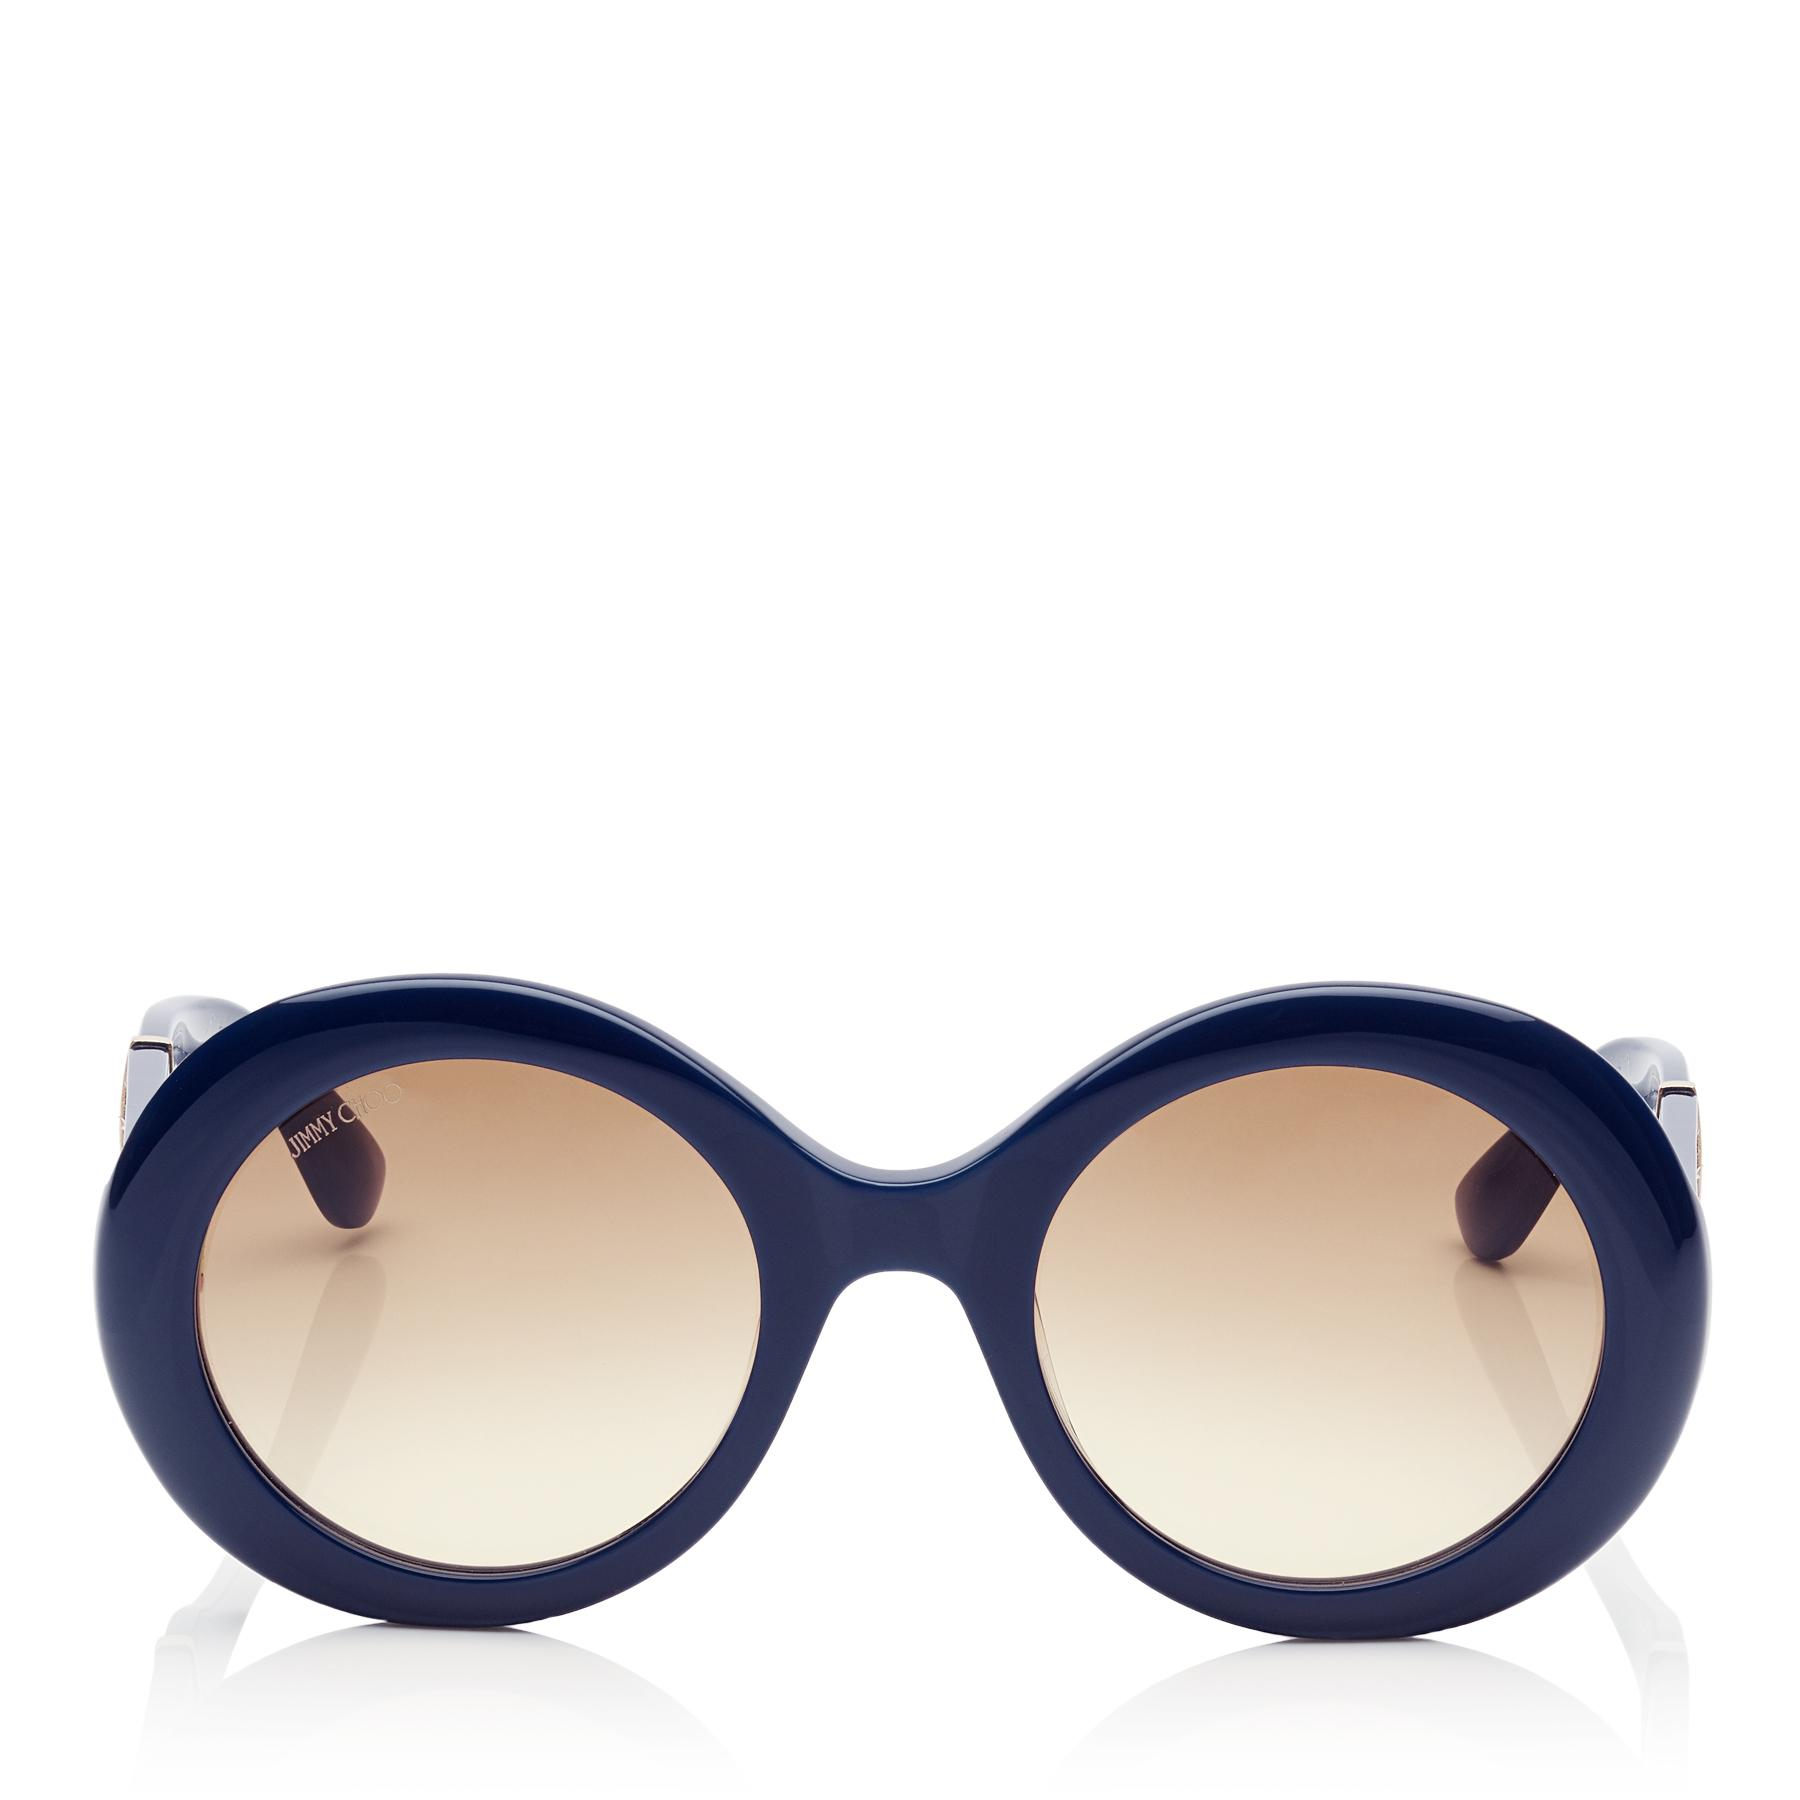 f61324f18aa0 Jimmy Choo. Women s Wendy Blue Round Framed Sunglasses With Lurex Detailing